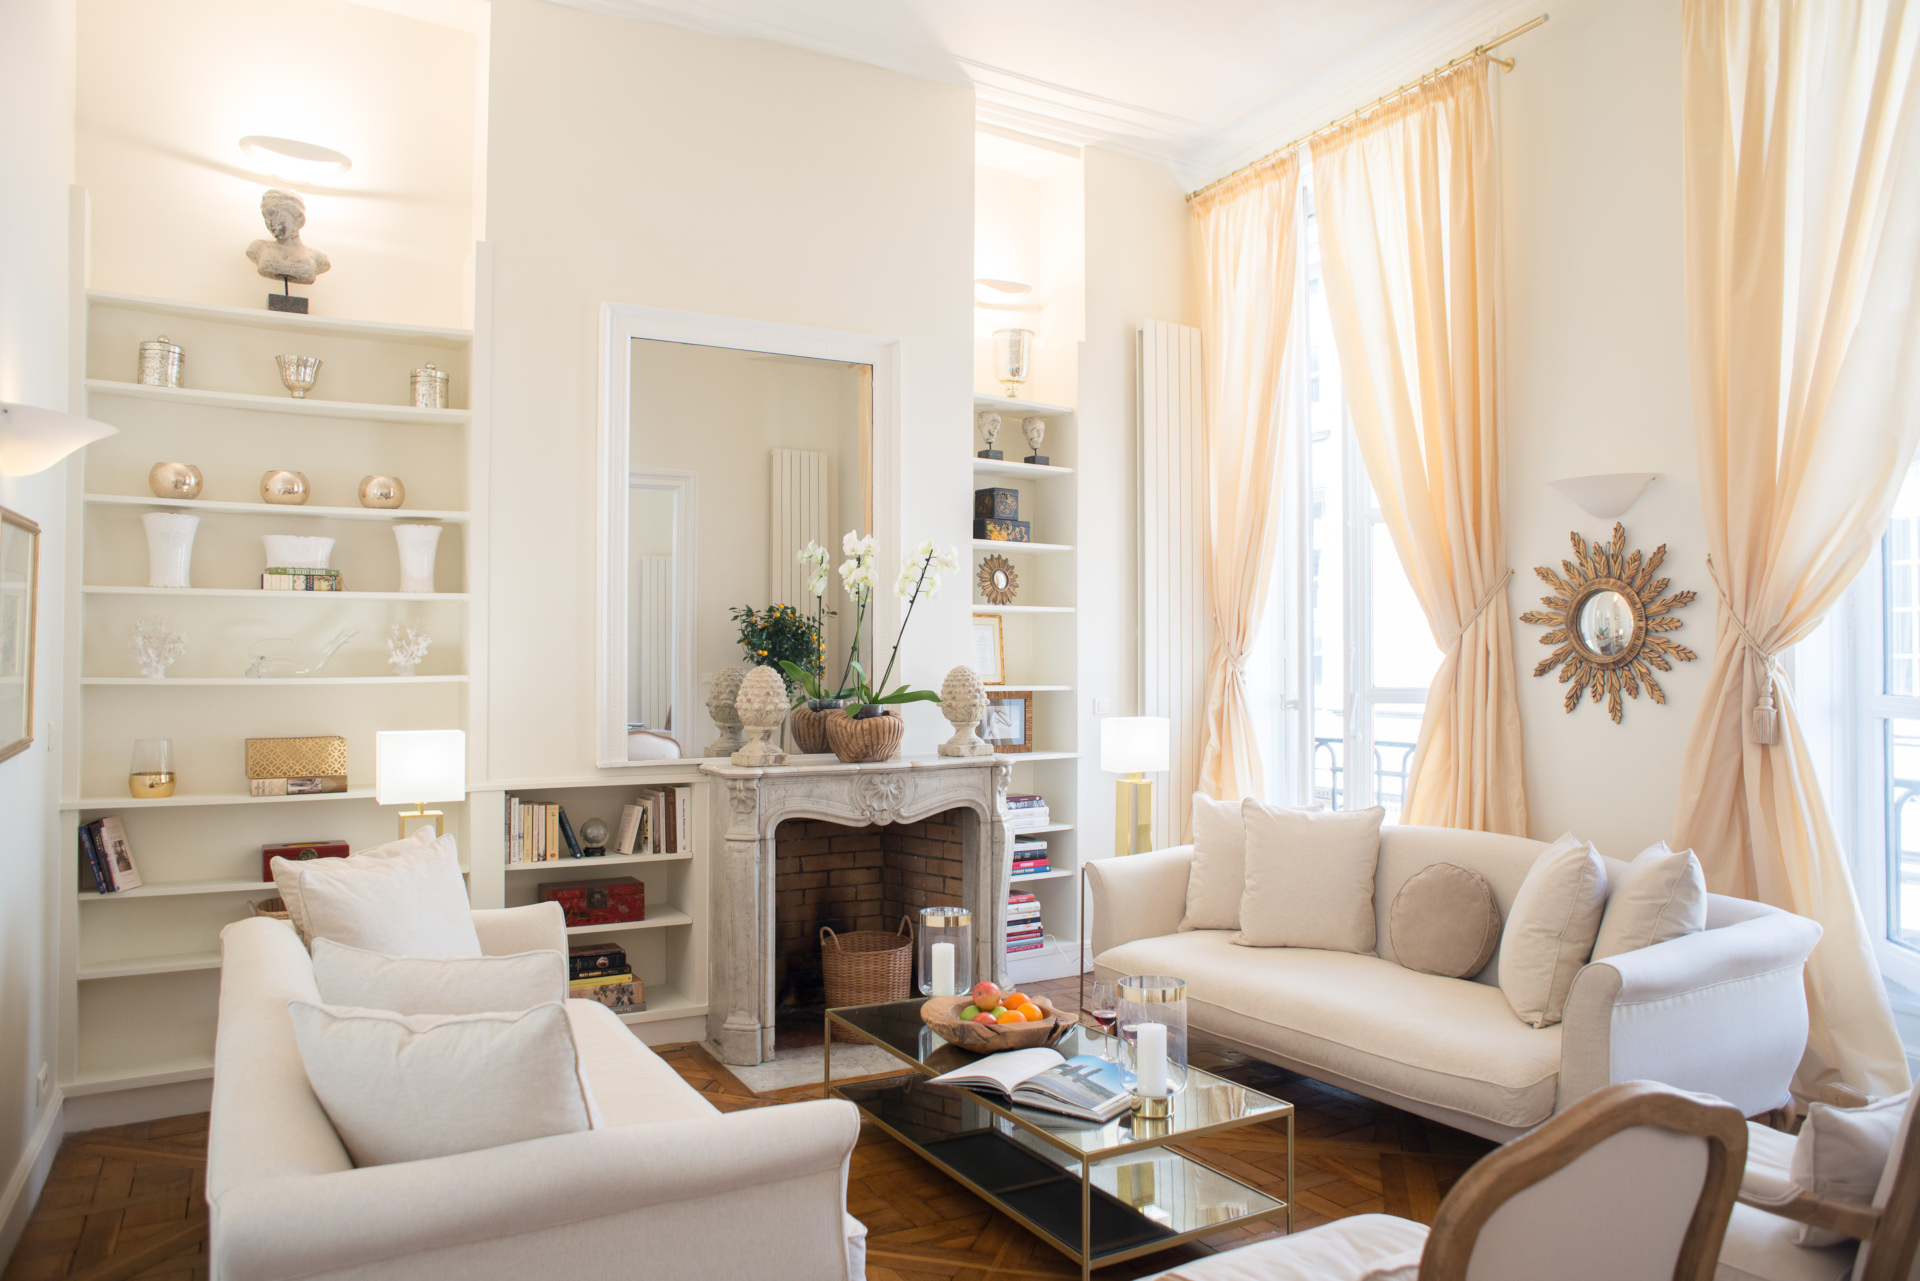 Book 3 bedroom 1st arrondissement paris apartment rental paris perfect sale